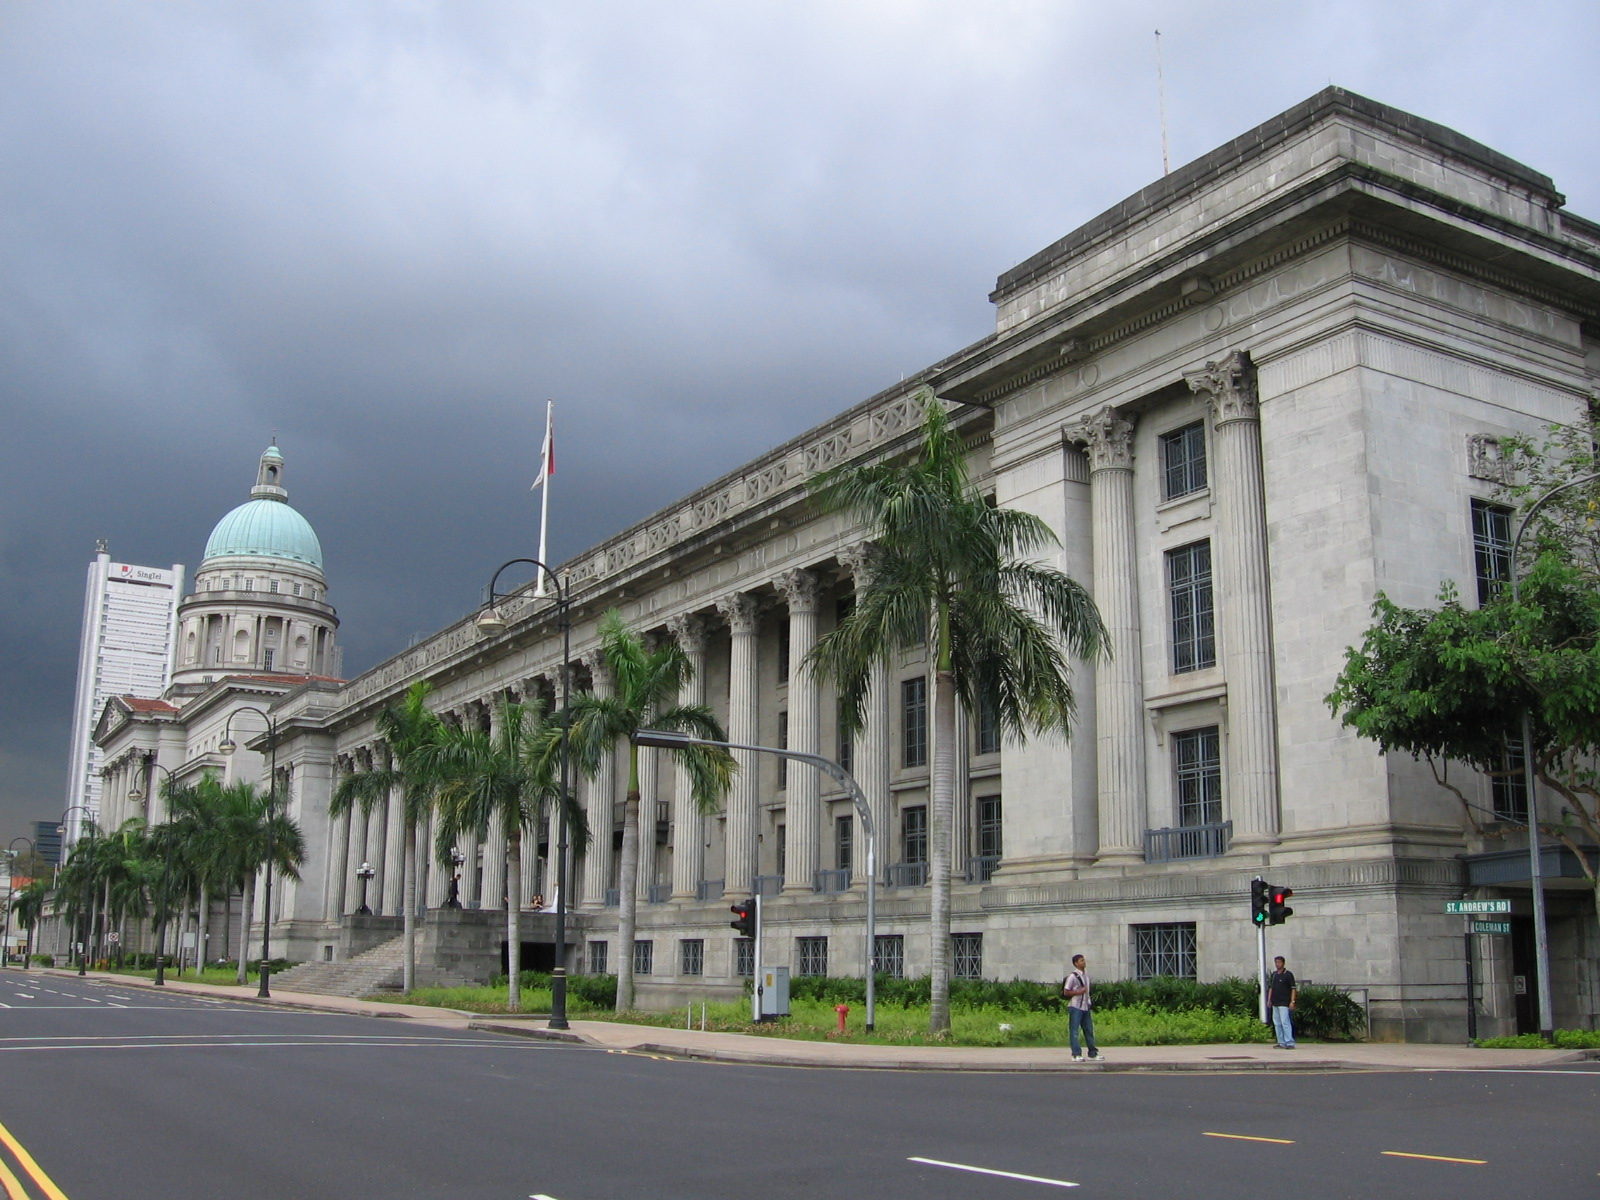 Book Flights To Singapore Sin Airlines Easyticket Kidzania Child City Hall And Old Supreme Court Building Jan 06